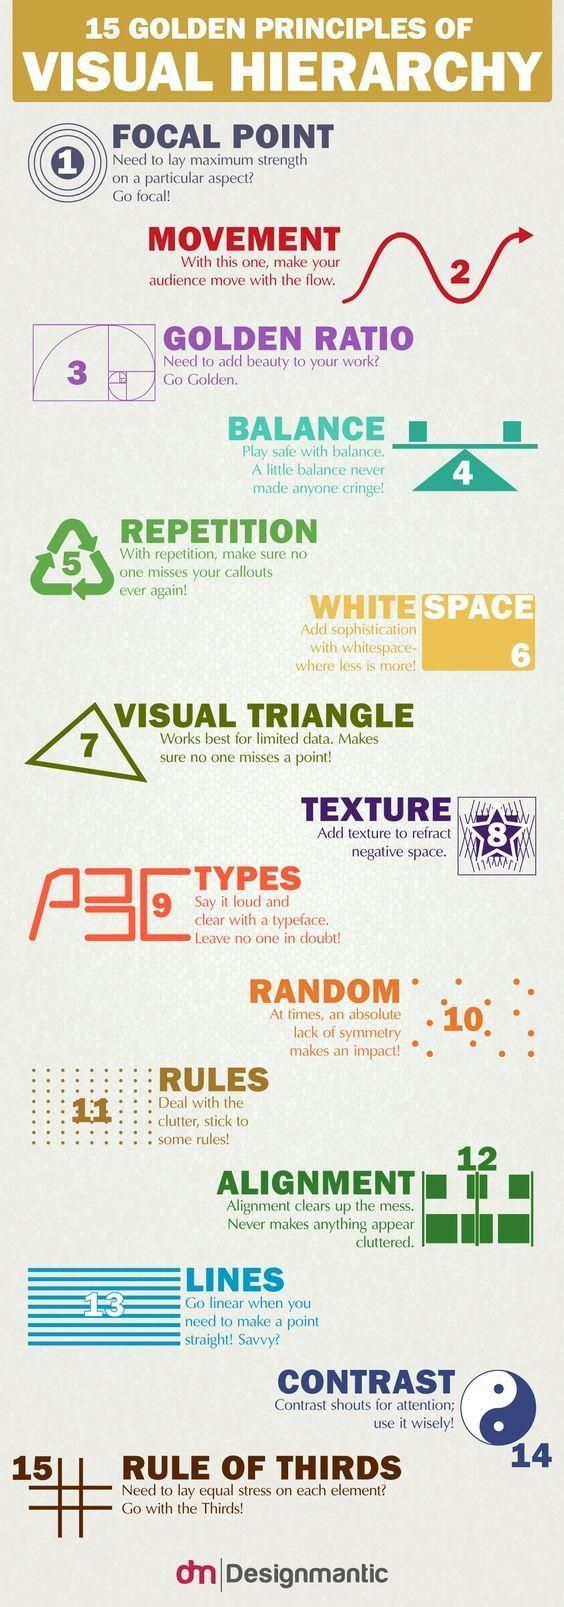 Collection of color palettes photoshop for ui designs web3canvas -  1 Welcome Linkedin